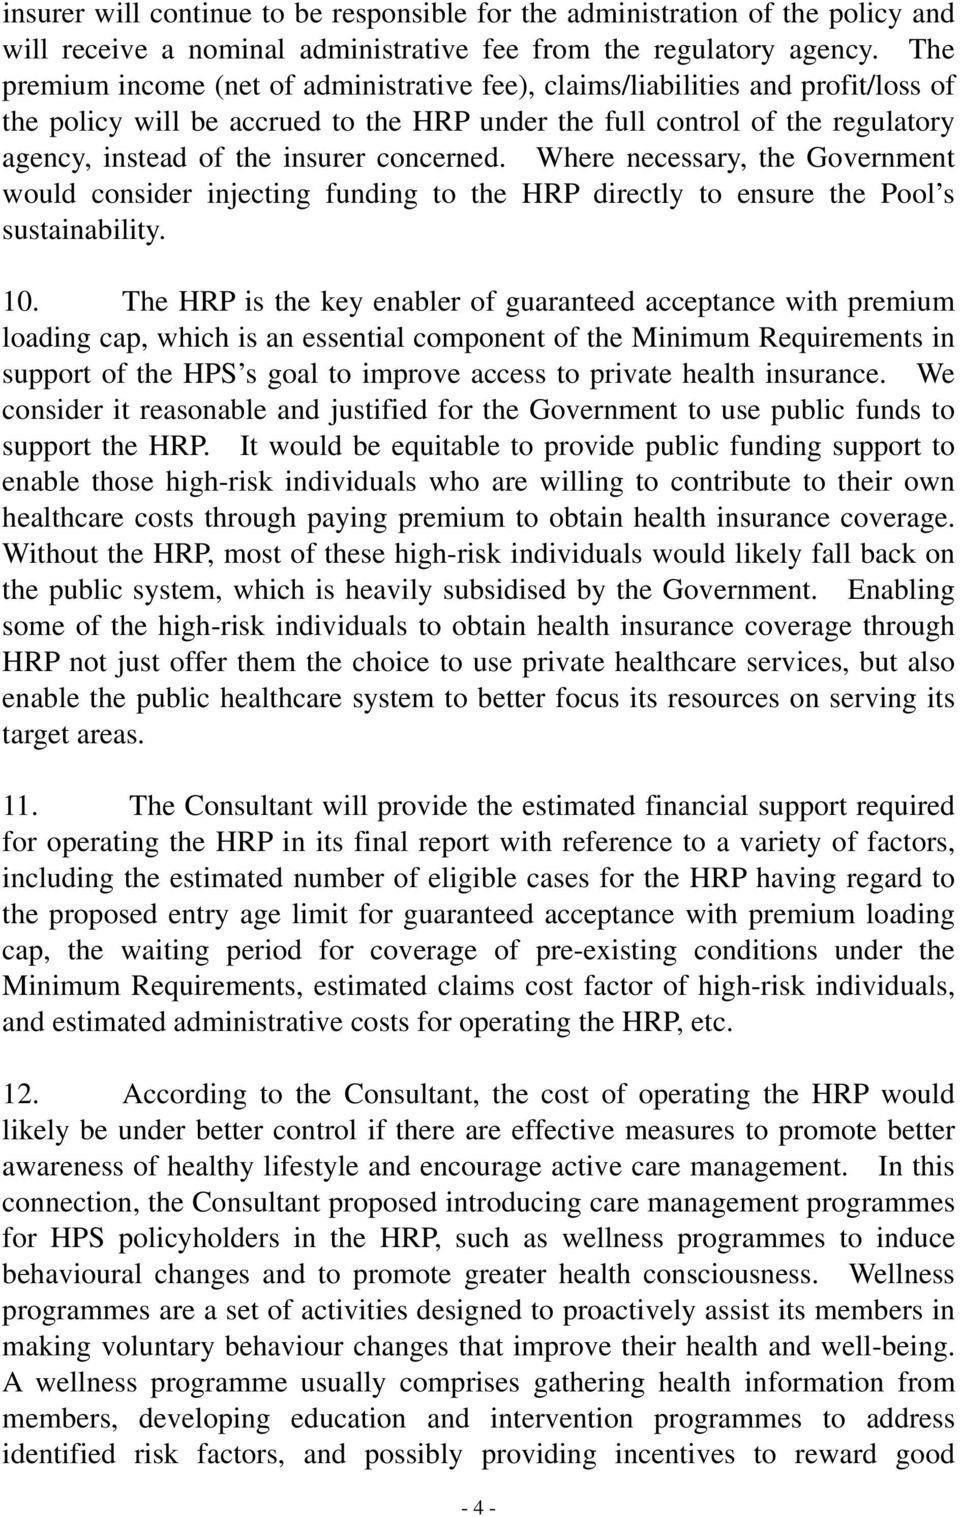 concerned. Where necessary, the Government would consider injecting funding to the HRP directly to ensure the Pool s sustainability. 10.